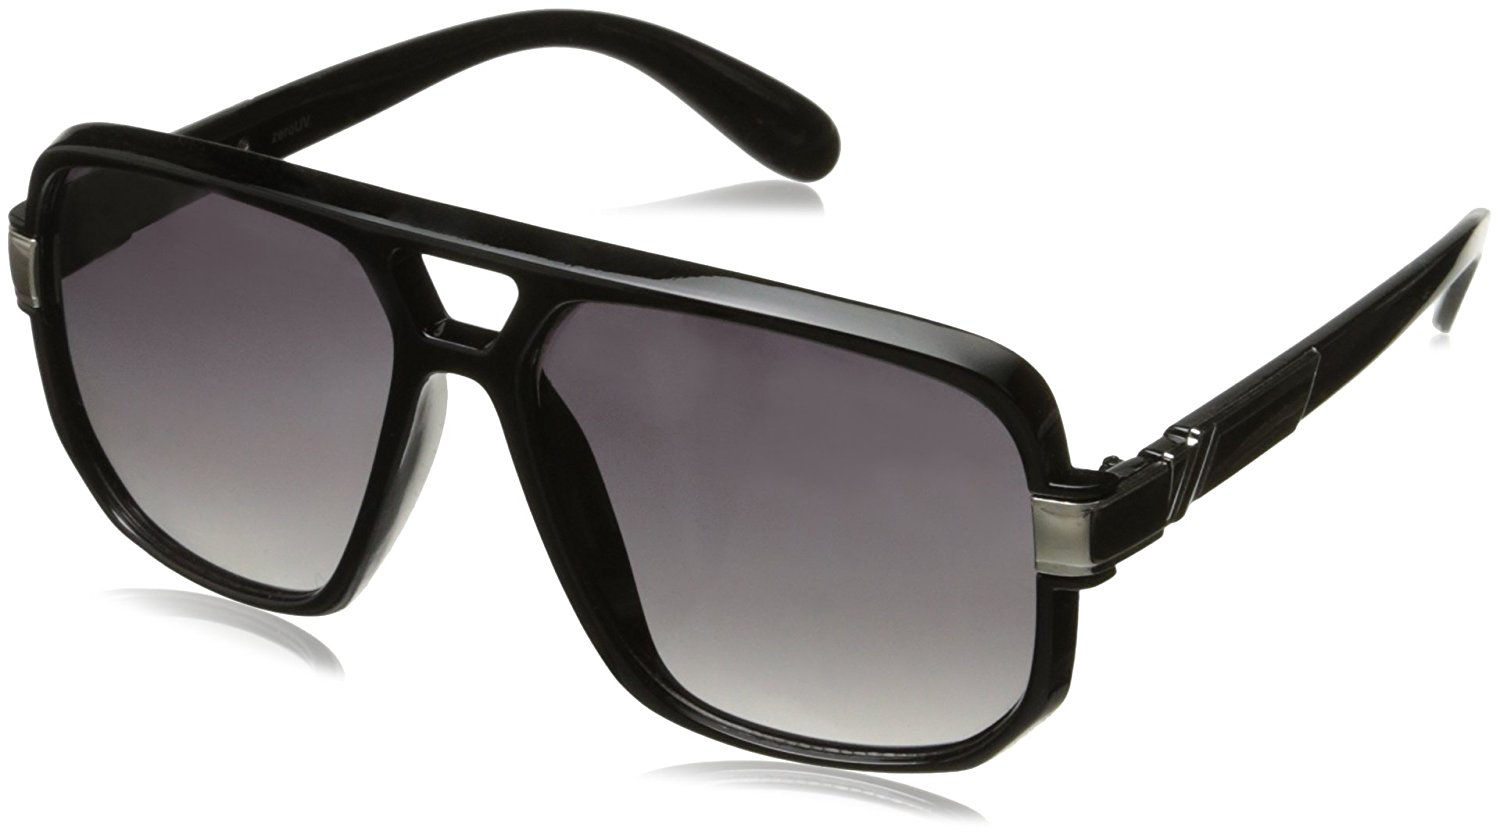 ray ban aviator sunglasses plastic frame